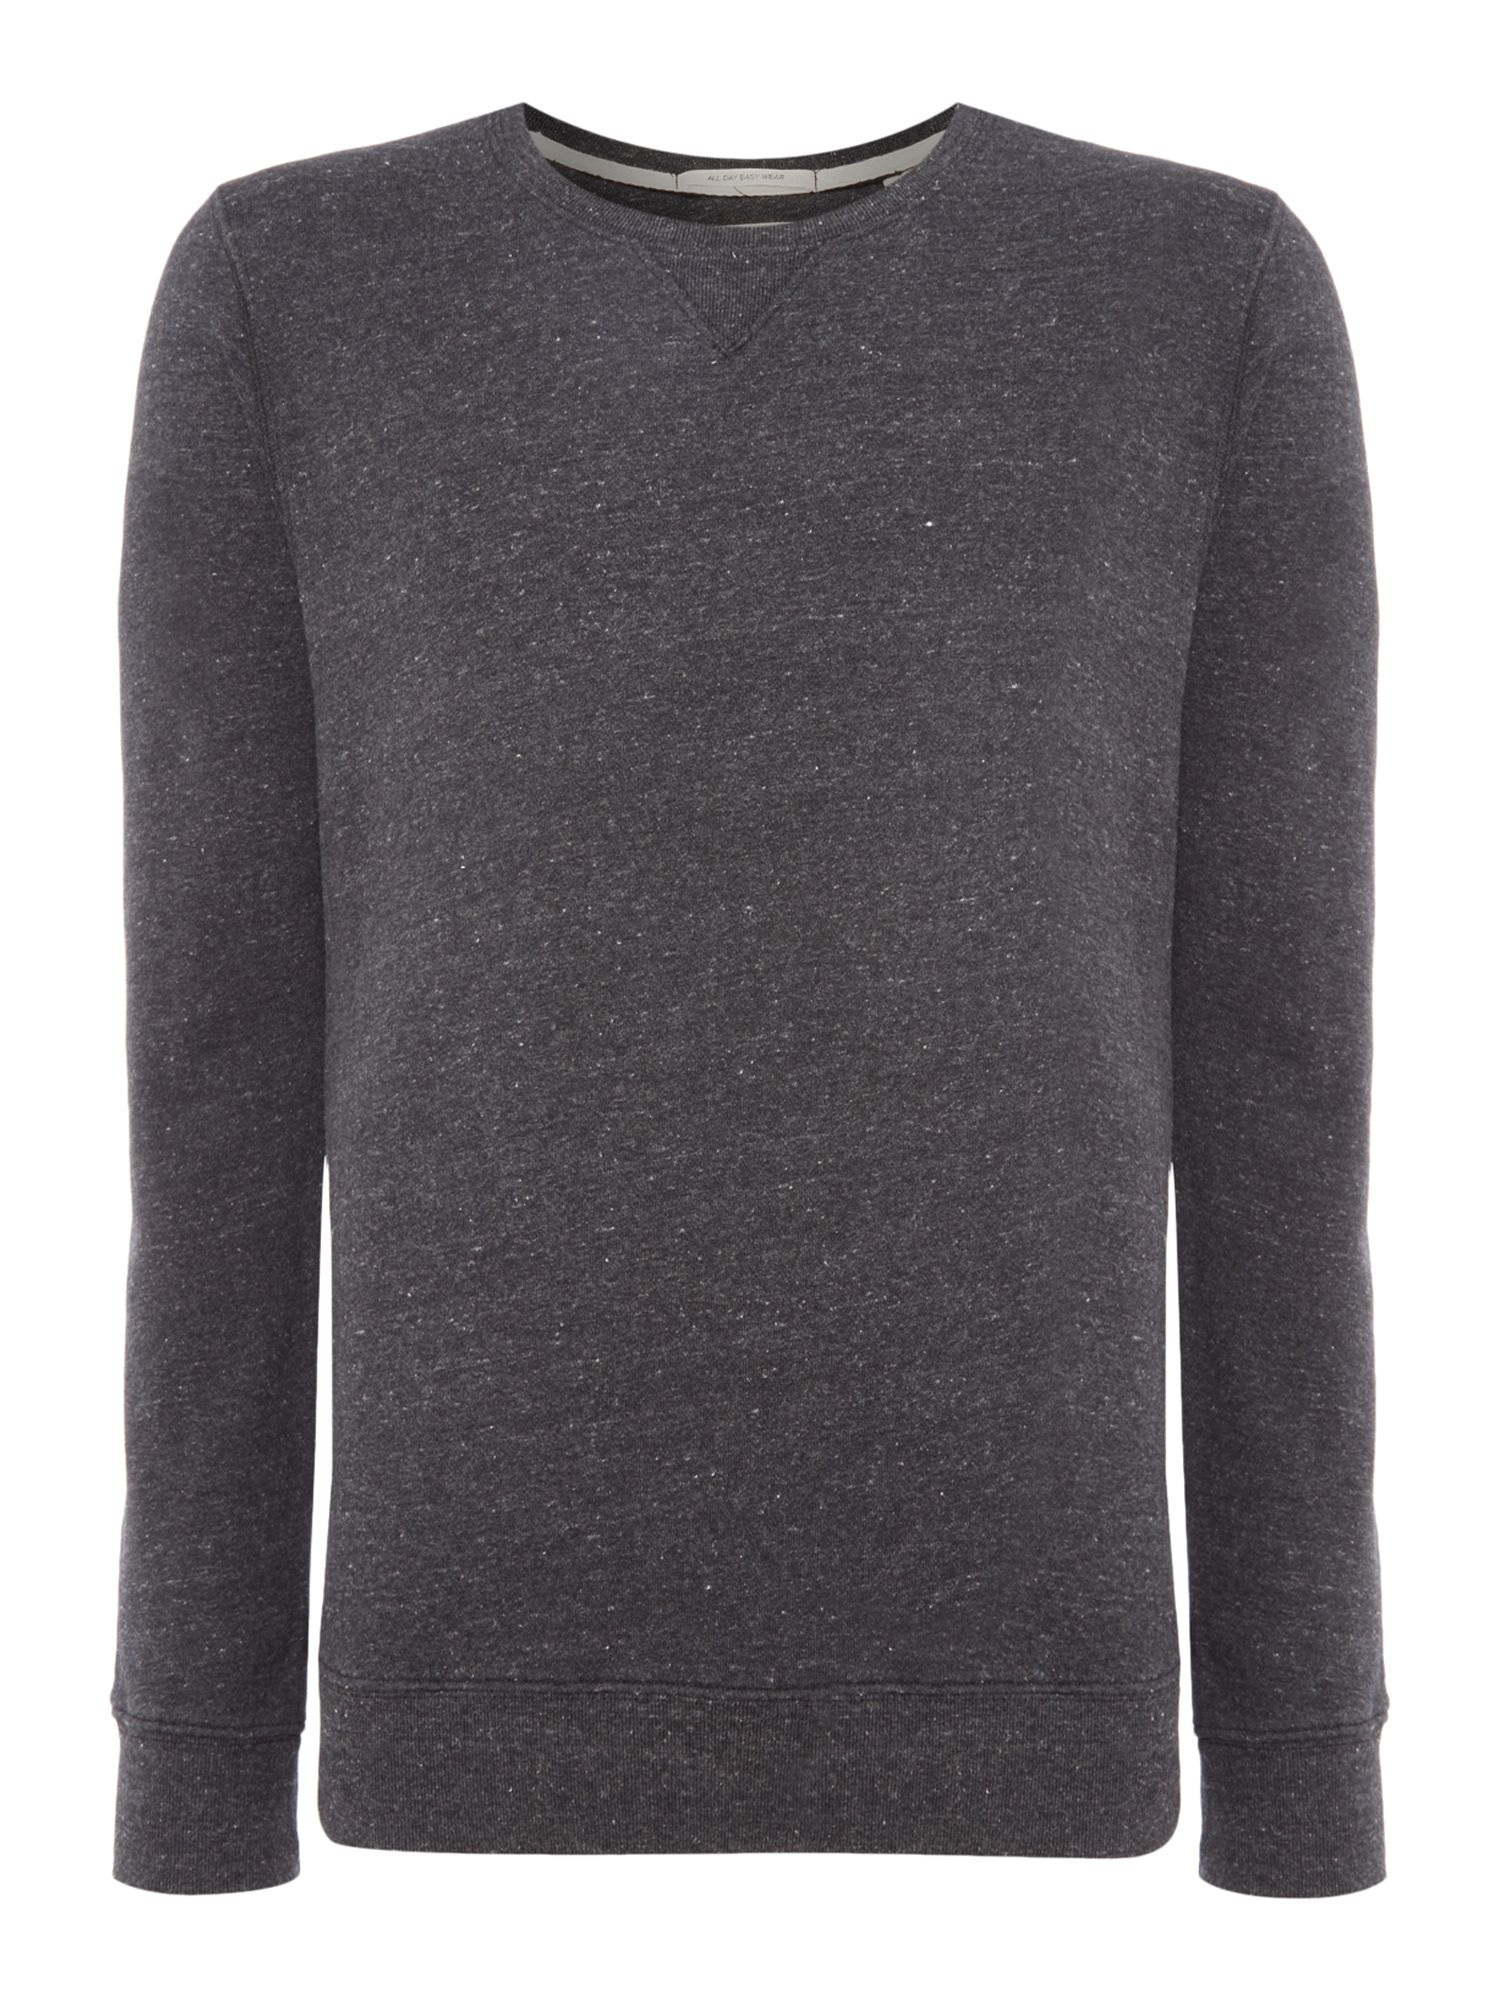 Men's Scotch & Soda Home Alone Crew Neck Sweat, Charcoal